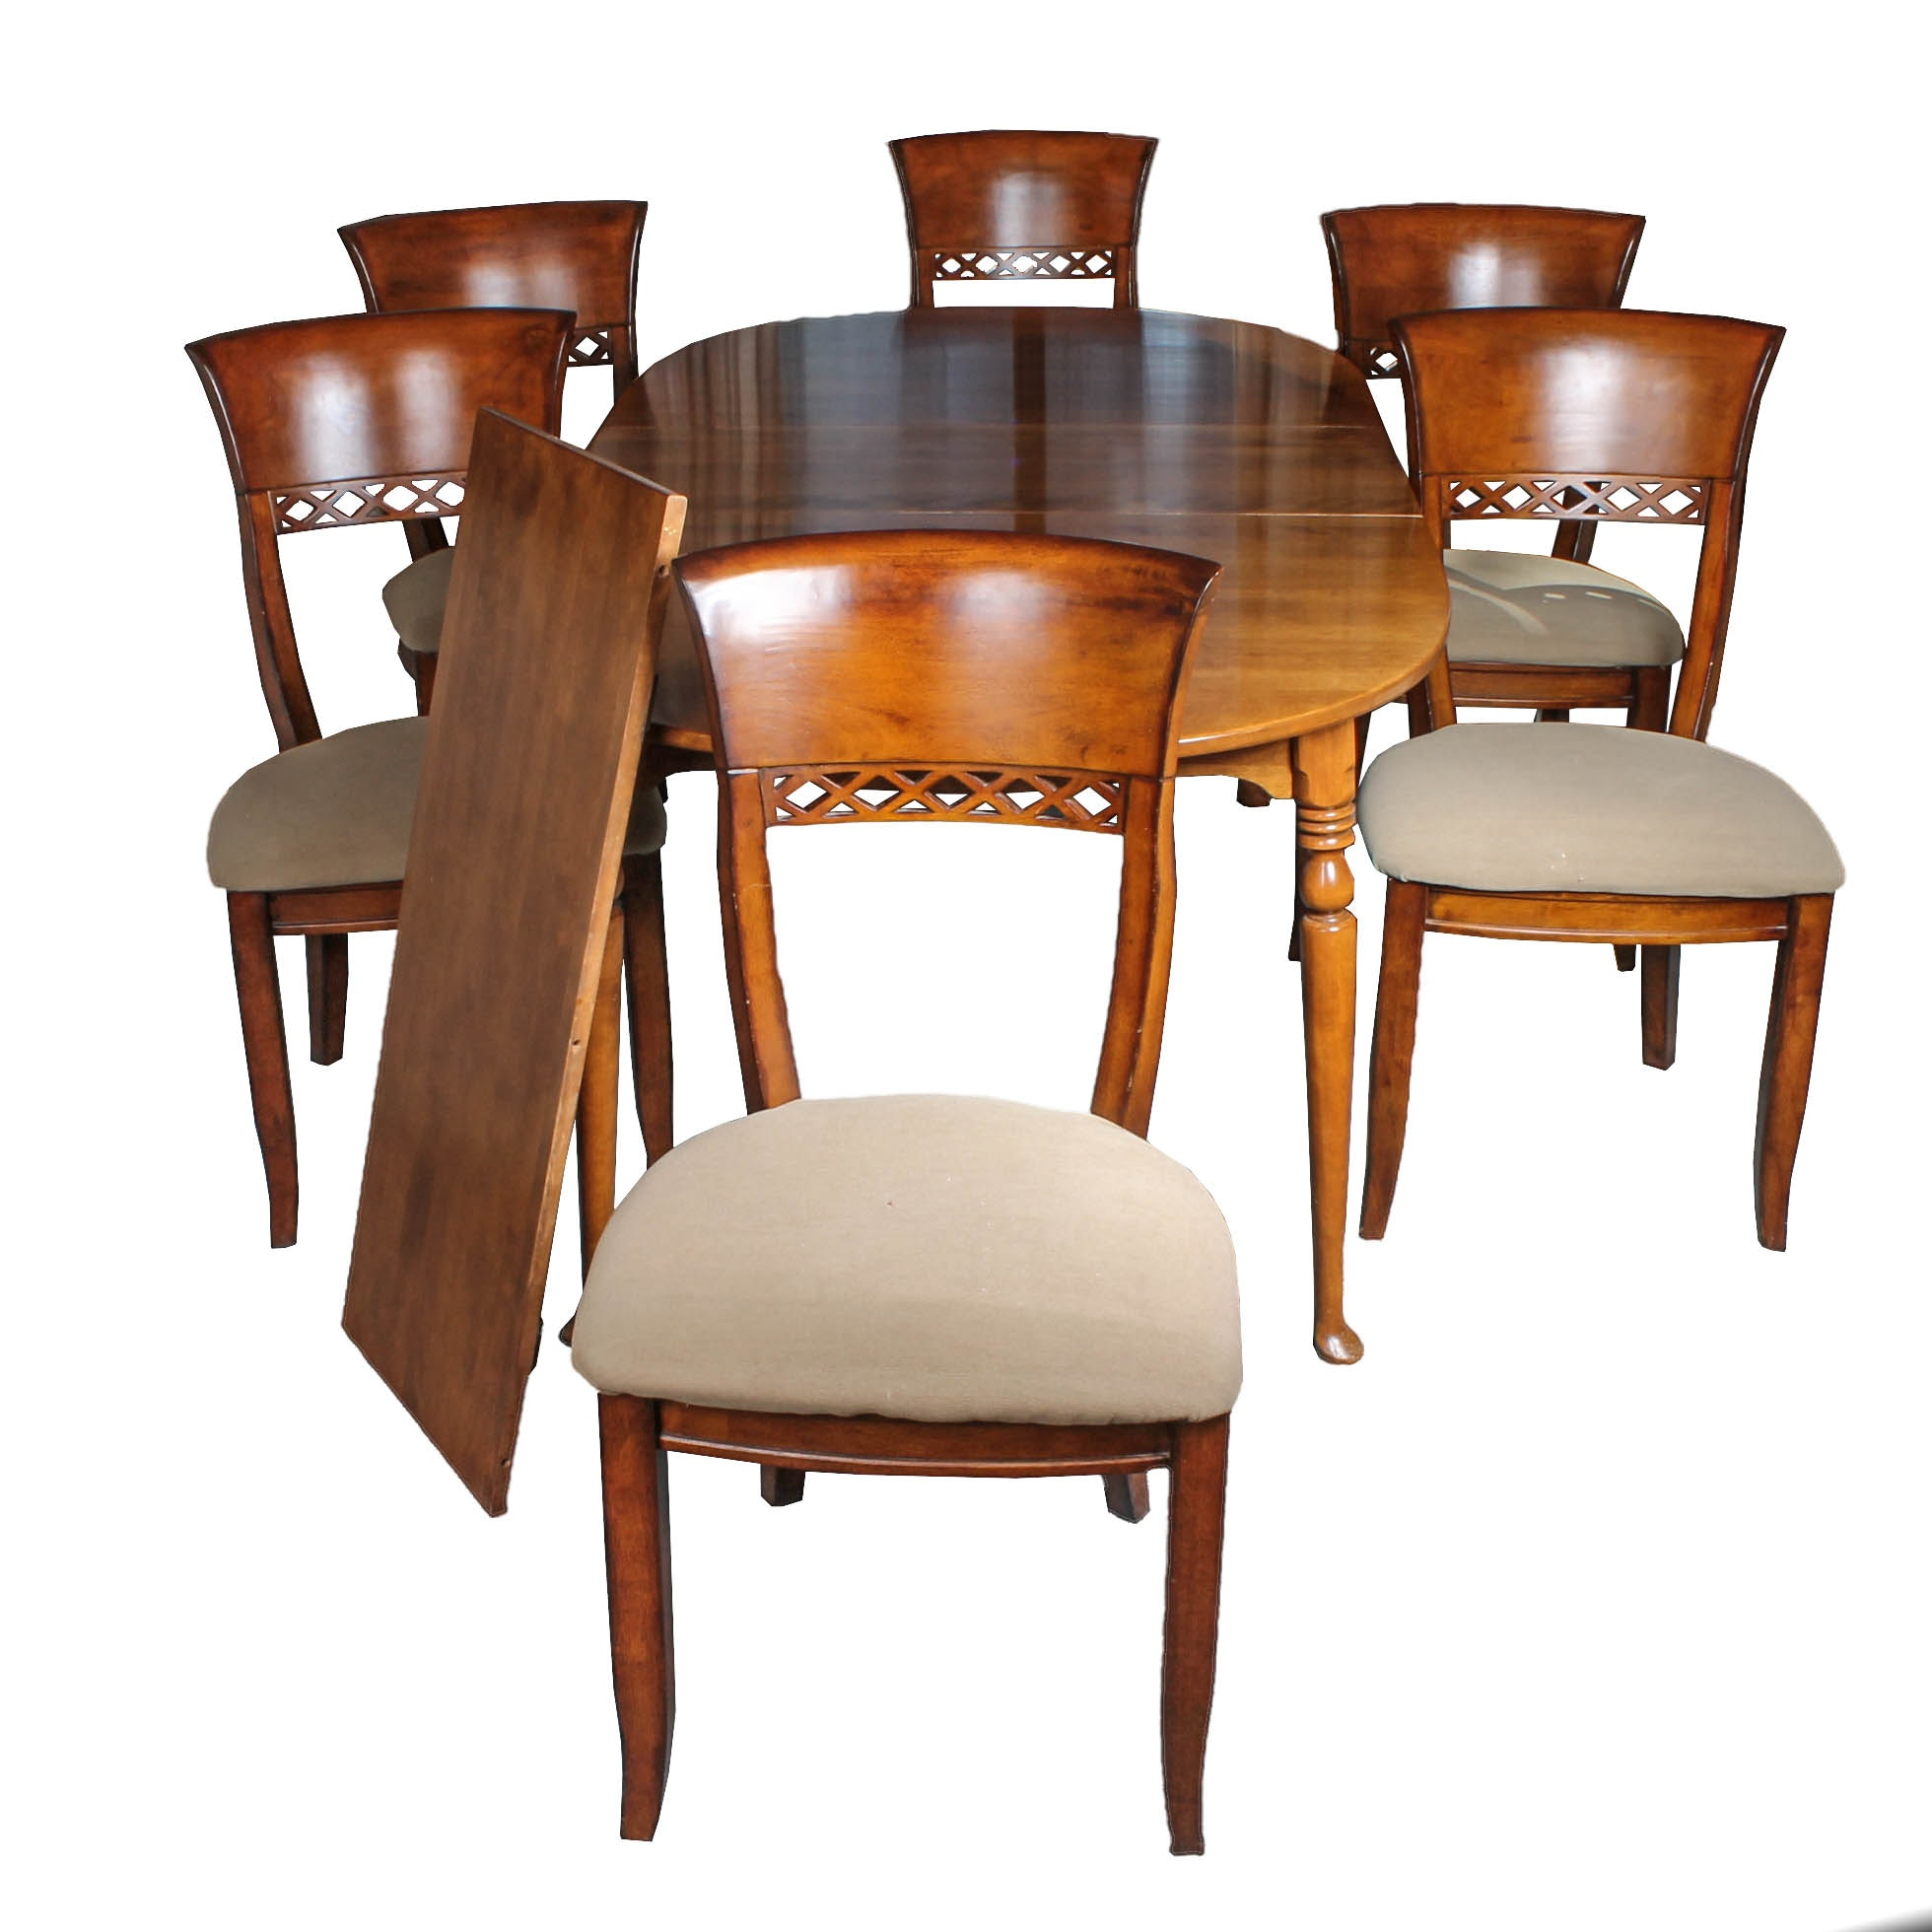 Traditional Maple Dining Table and Six Chairs by Ethan Allen